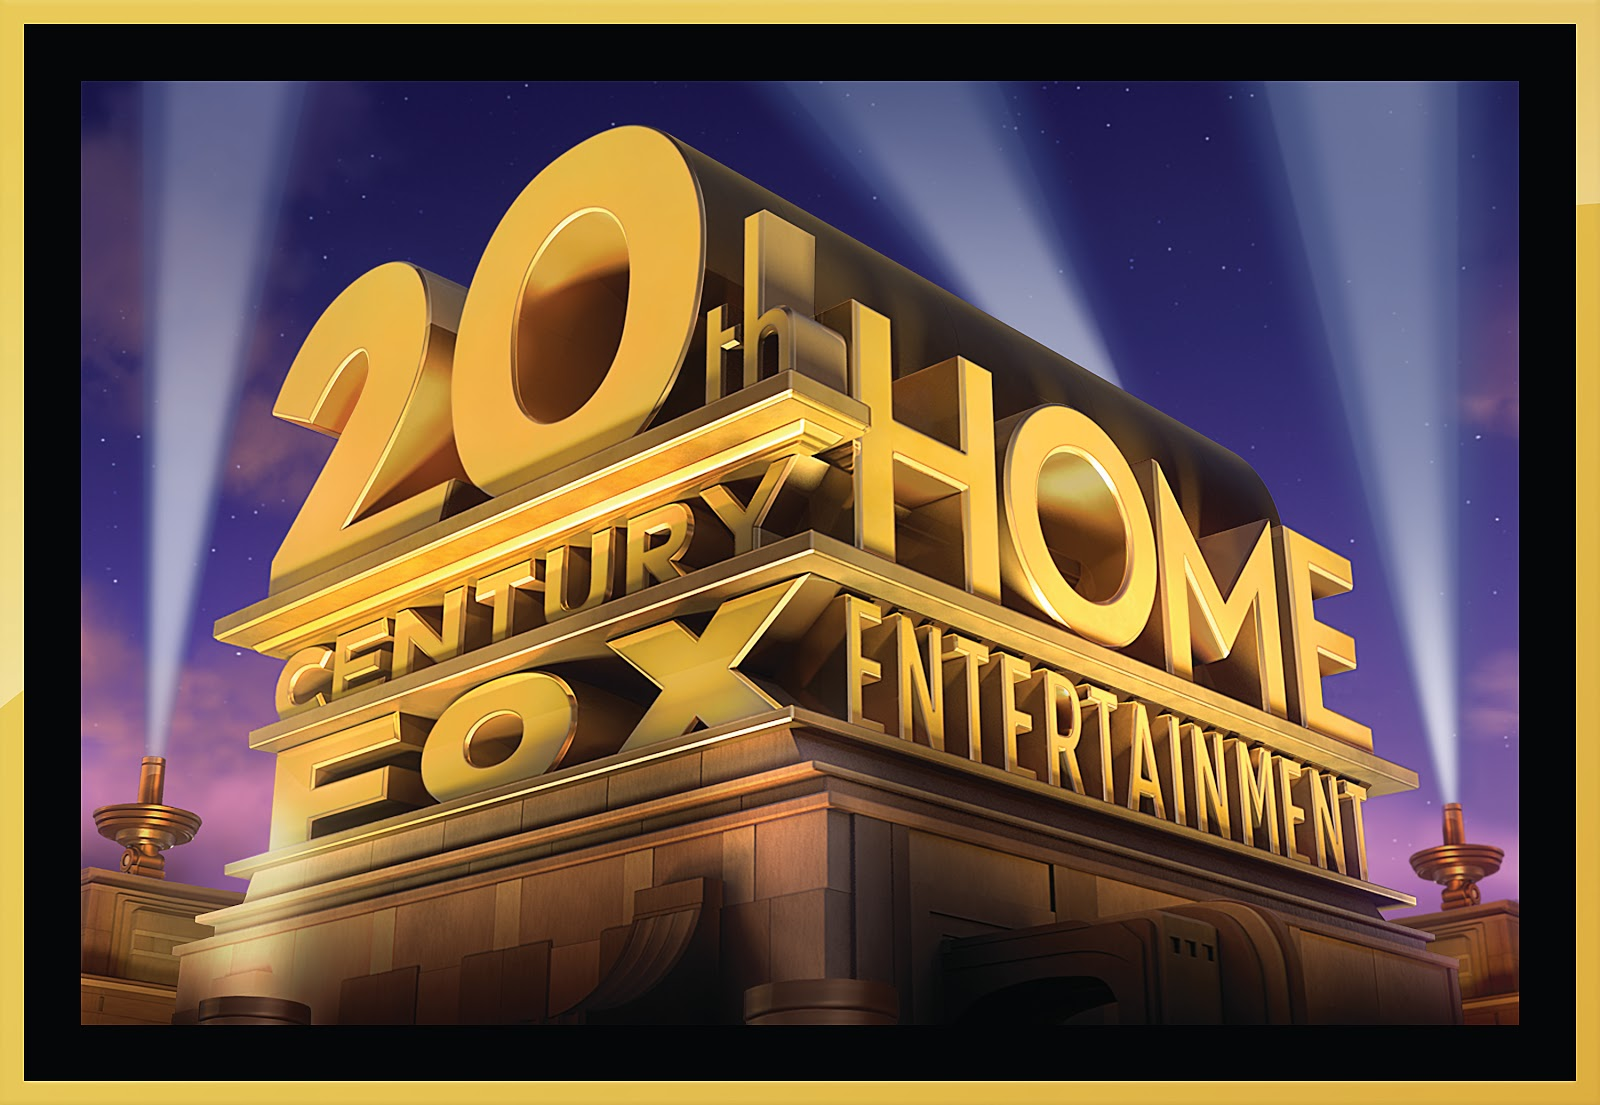 20th century fox home entertainment - Video Search Engine ...